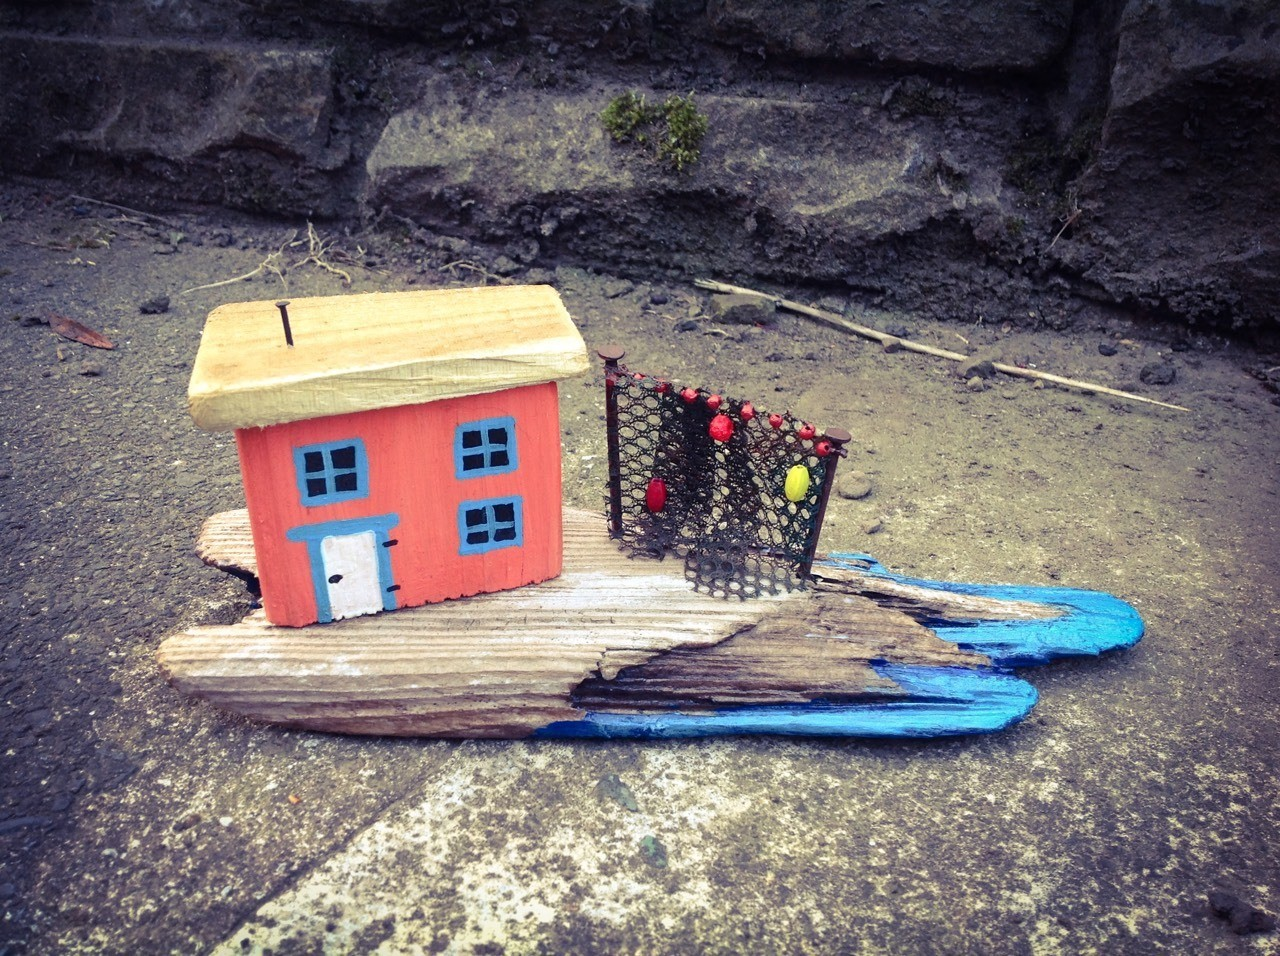 'Drying the Fishing Nets'. A peaceful little shack on its driftwood promontory by the shore of a glittering sea.